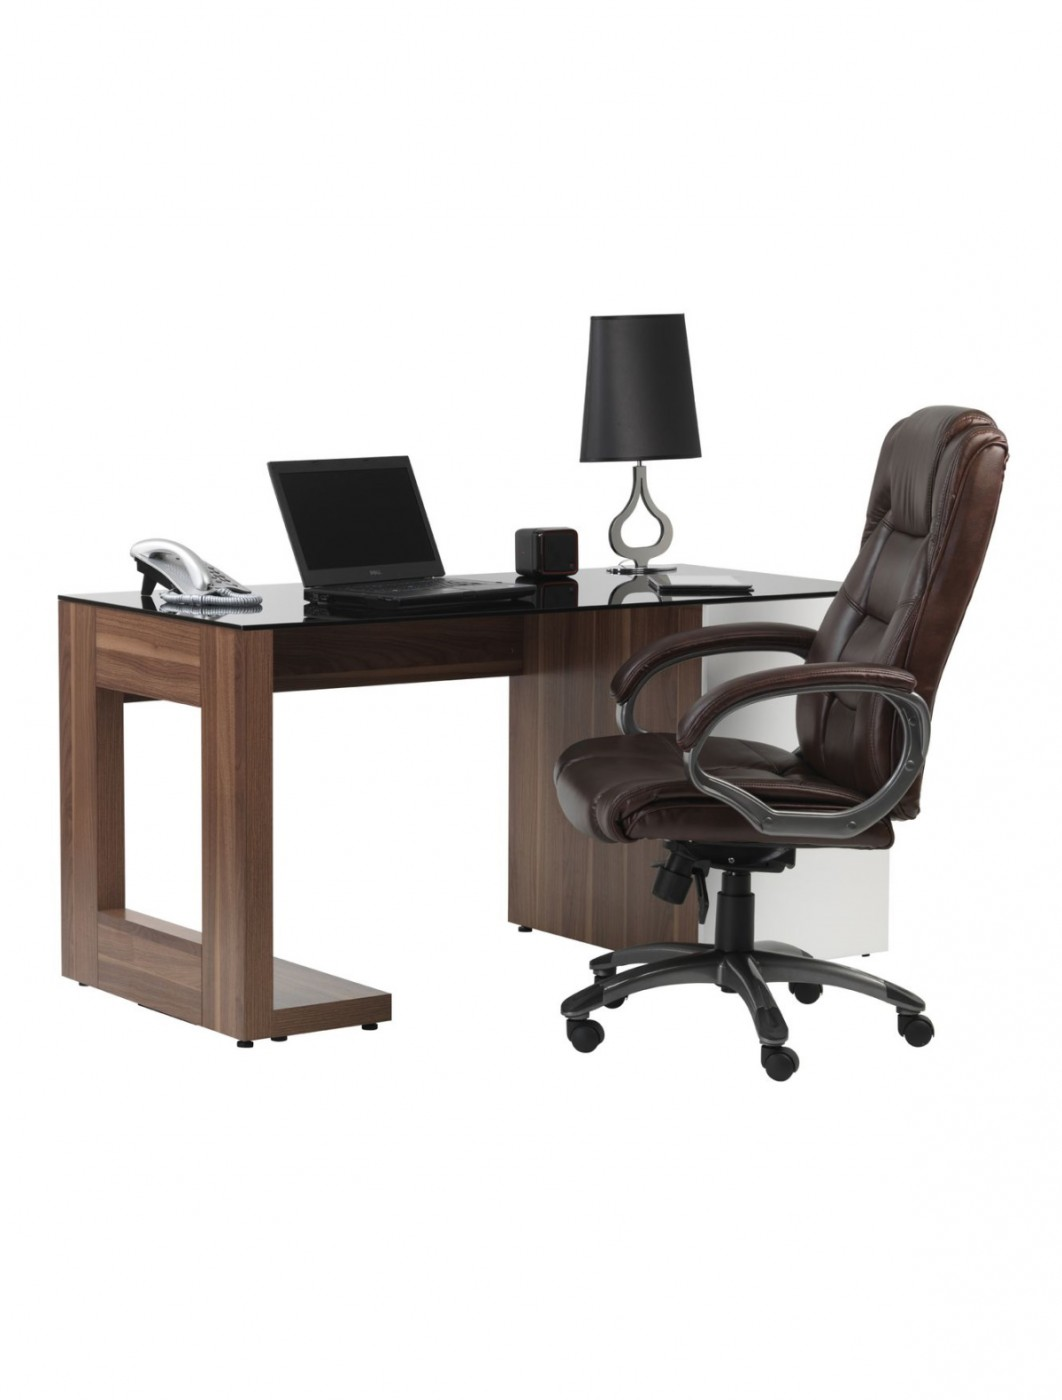 Office Chair Brown Leather Faced Northland Executive Chair AOC6332-L-BR by Alphason